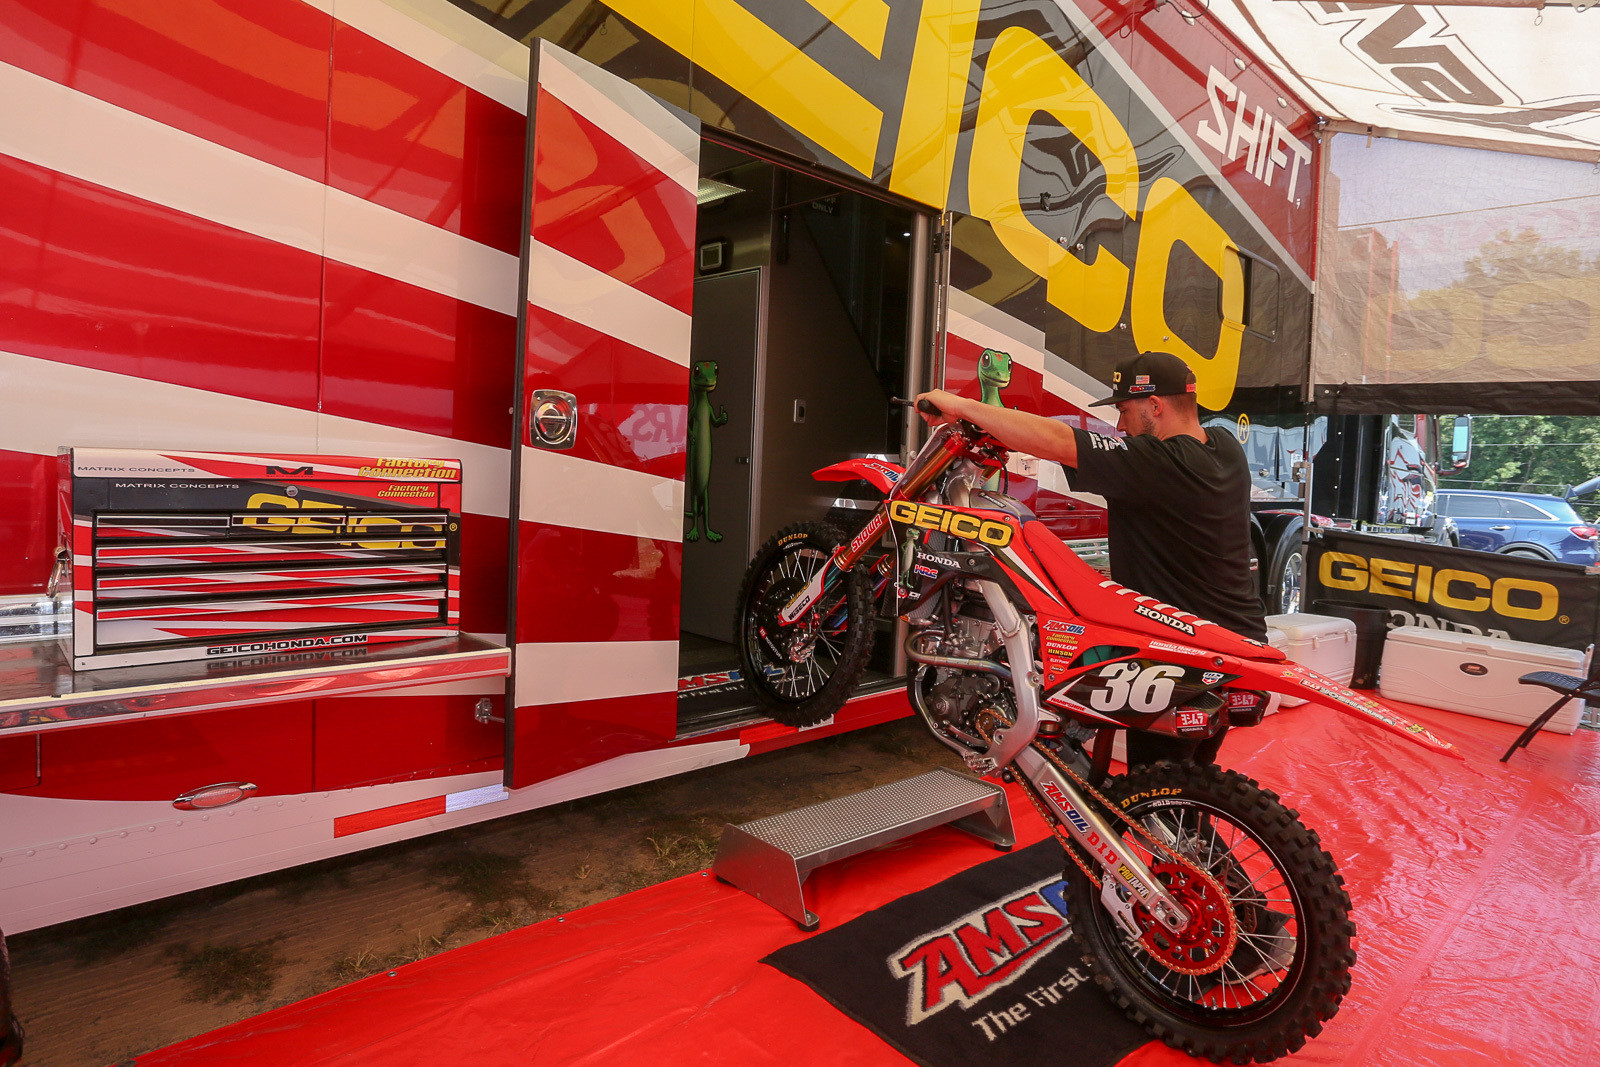 Keith Clickstein unloading RJ Hampshire's race-winning 250 out of the GEICO Honda rig on Friday morning.